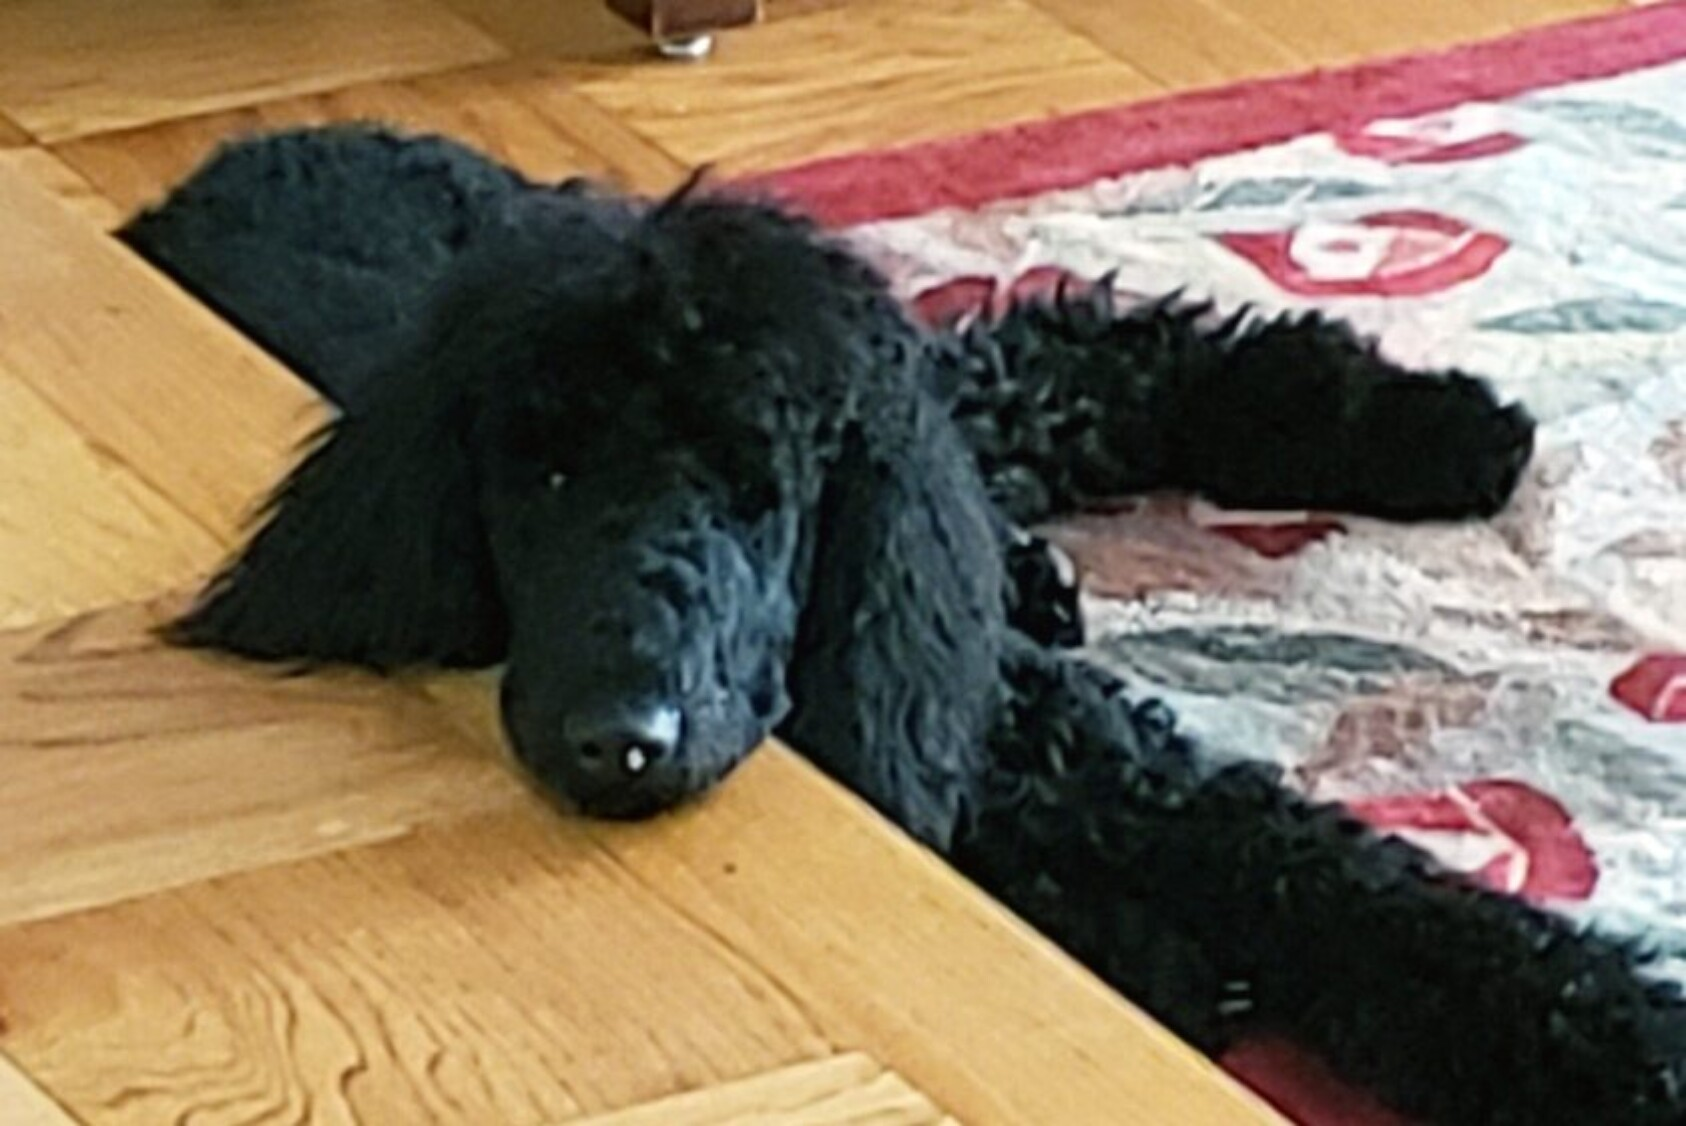 """""""Meet Yadi: an ink-black, Standard Poodle puppy named after Cardinals' awesome catcher Yadier Molina. Yes, Yadi is an EXCELLENT catcher! We got him on March 21, and now he's 13 months old. We take a million pictures, but he's so black that he looks like a blob. At night, he melts into the shadows and you literally cannot see him. When you can see him and hug him, he is the fluffiest, sweetest, most lovable creature!"""" —Laurie Gibson Lindberg '79, Annandale, VA"""